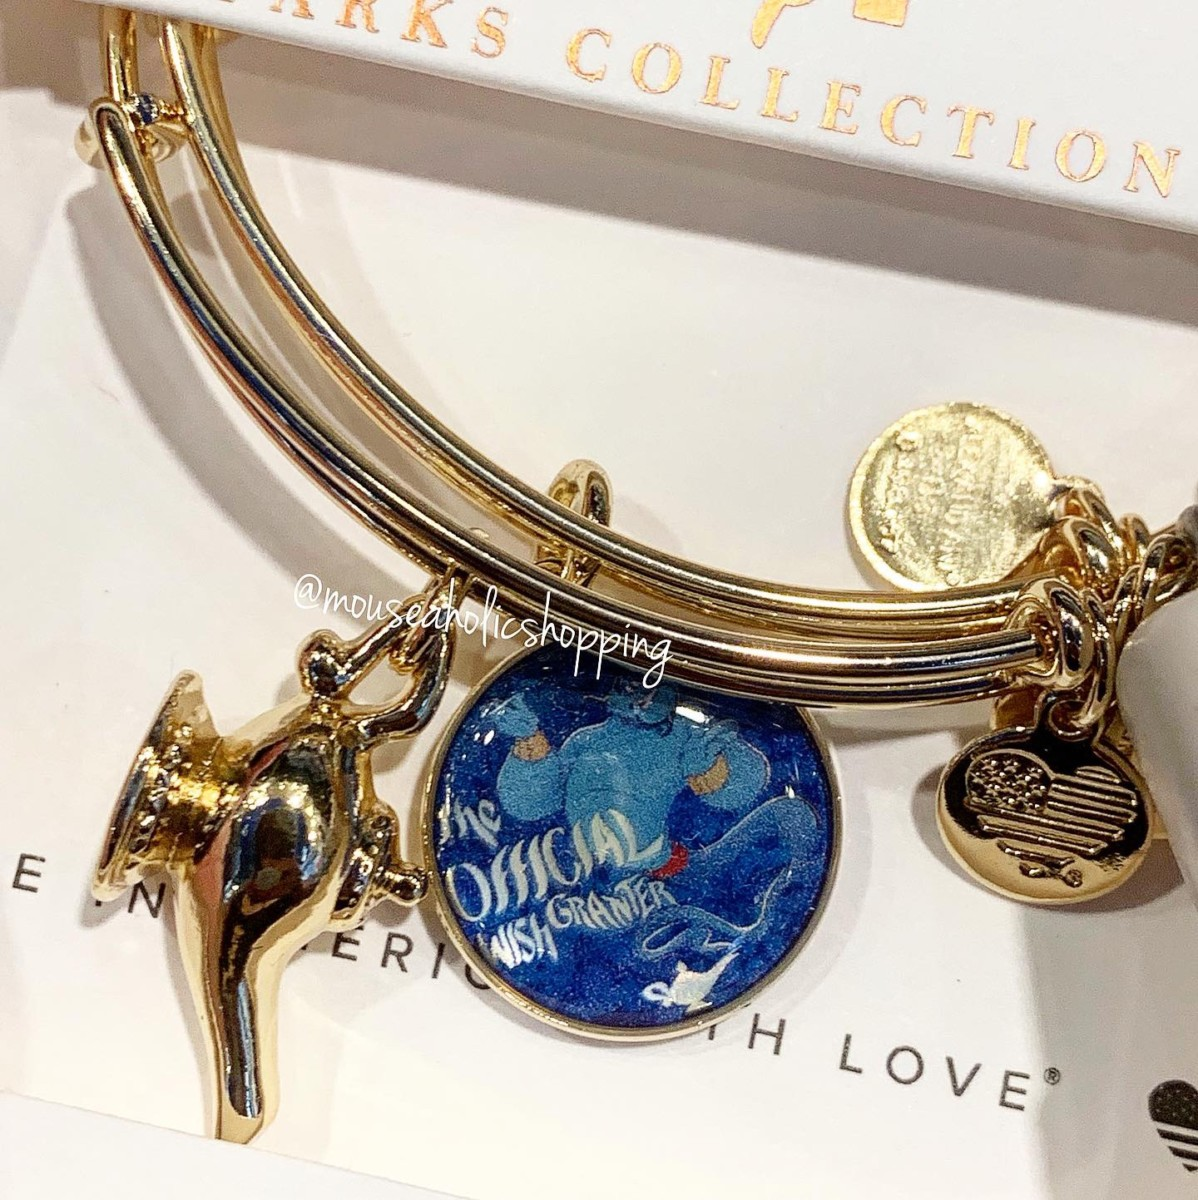 New Aladdin Inspired Alex and Ani Bracelets Are Shining, Shimmering Splendid #DisneyStyle 29